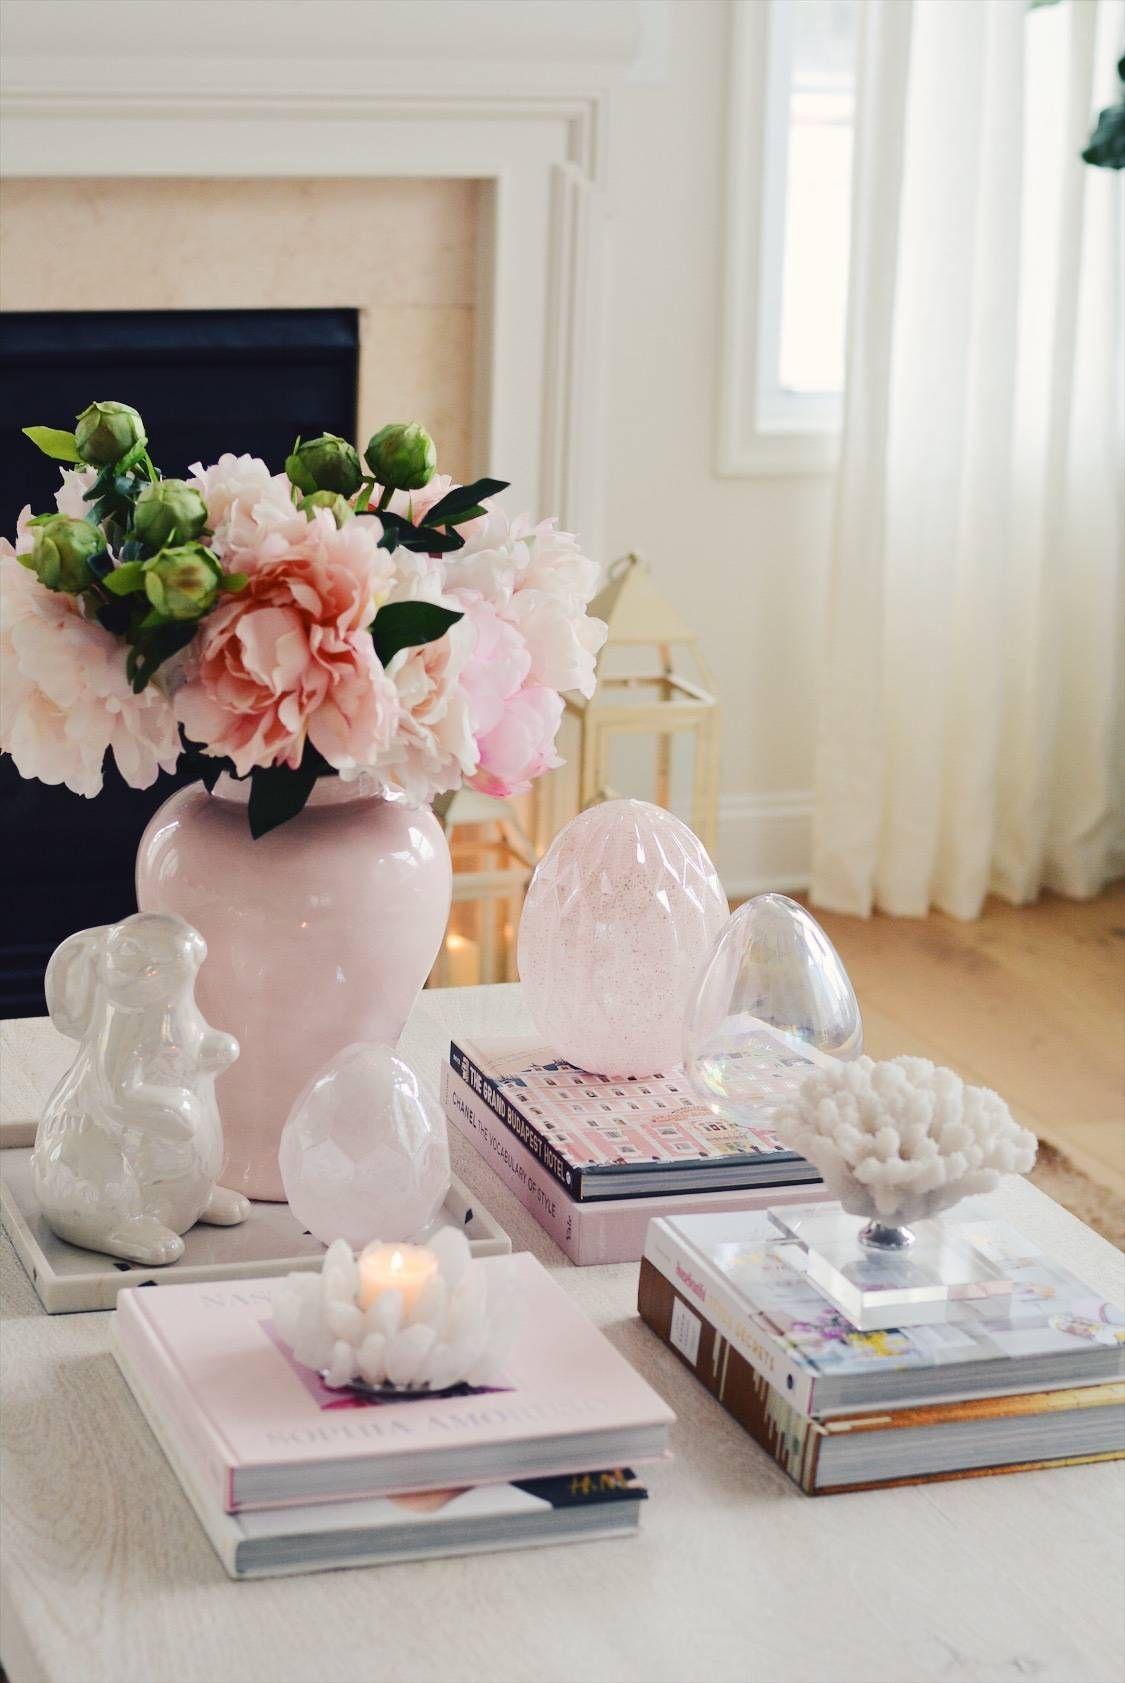 Elegant Spring Home Tour And Easter Decor 2019 In 2020 Easter Coffee Table Decor Spring Decor Modern Coffee Table Decor